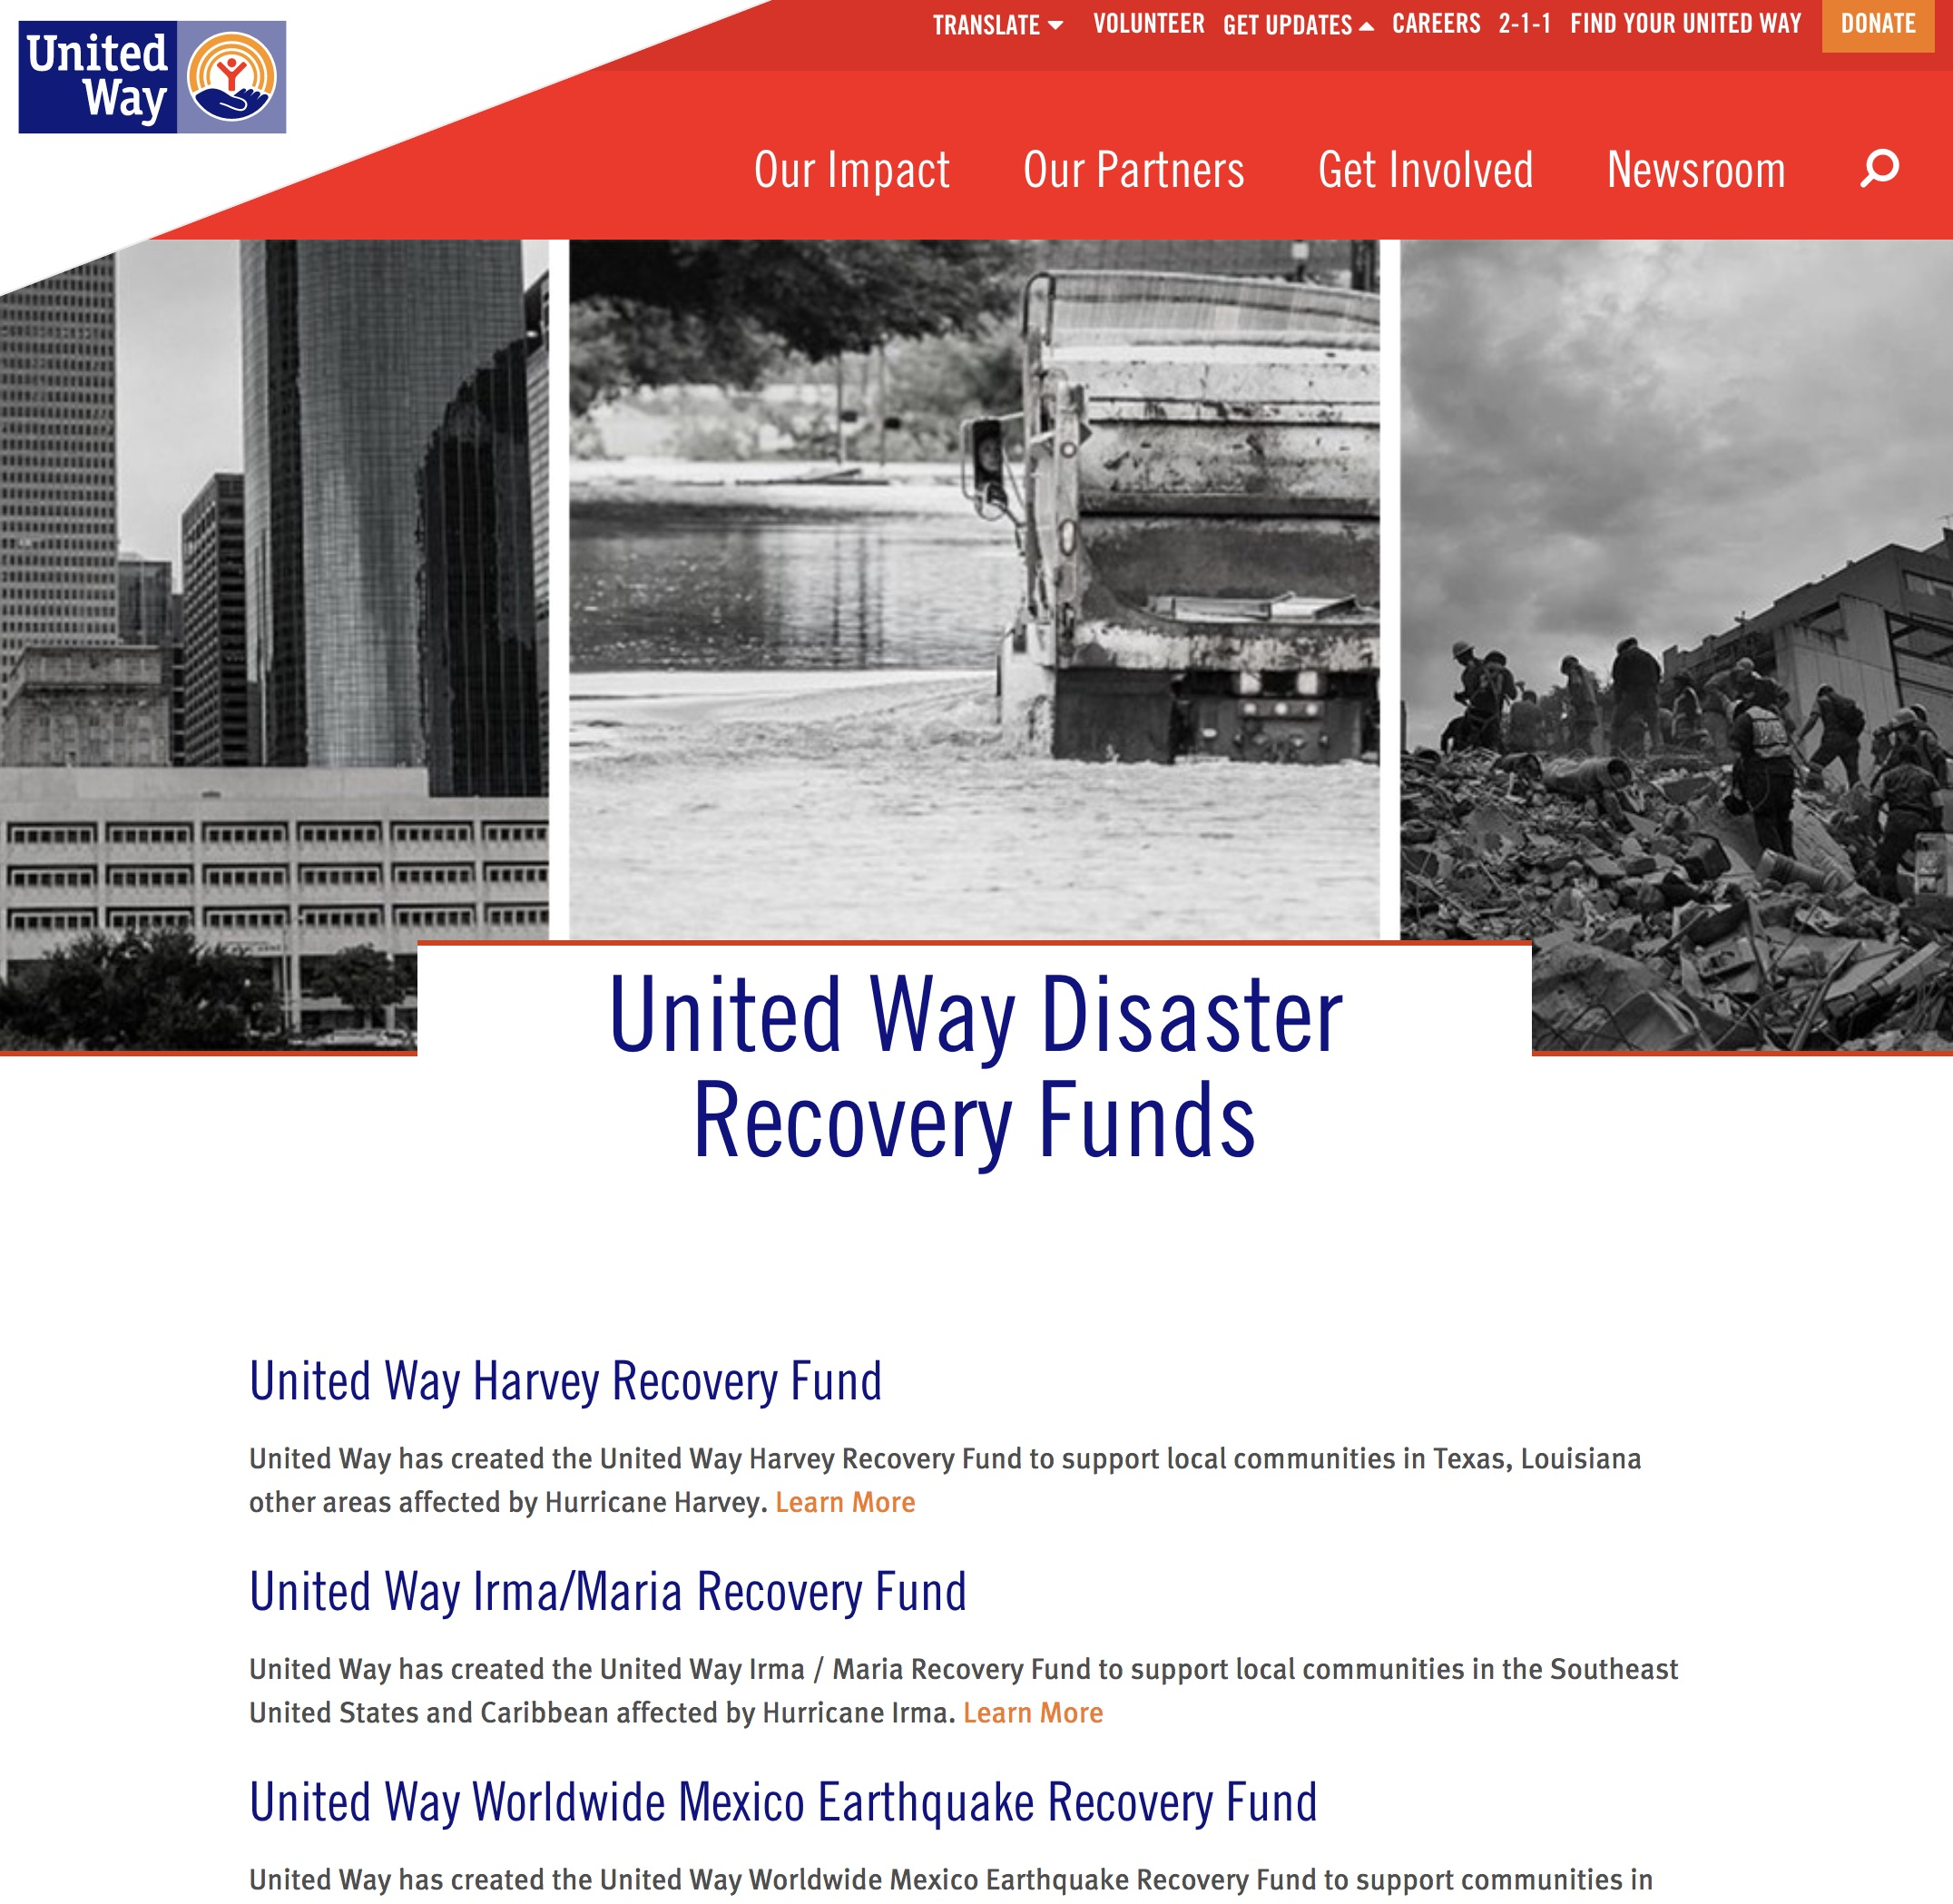 United Way Recovery Website Image